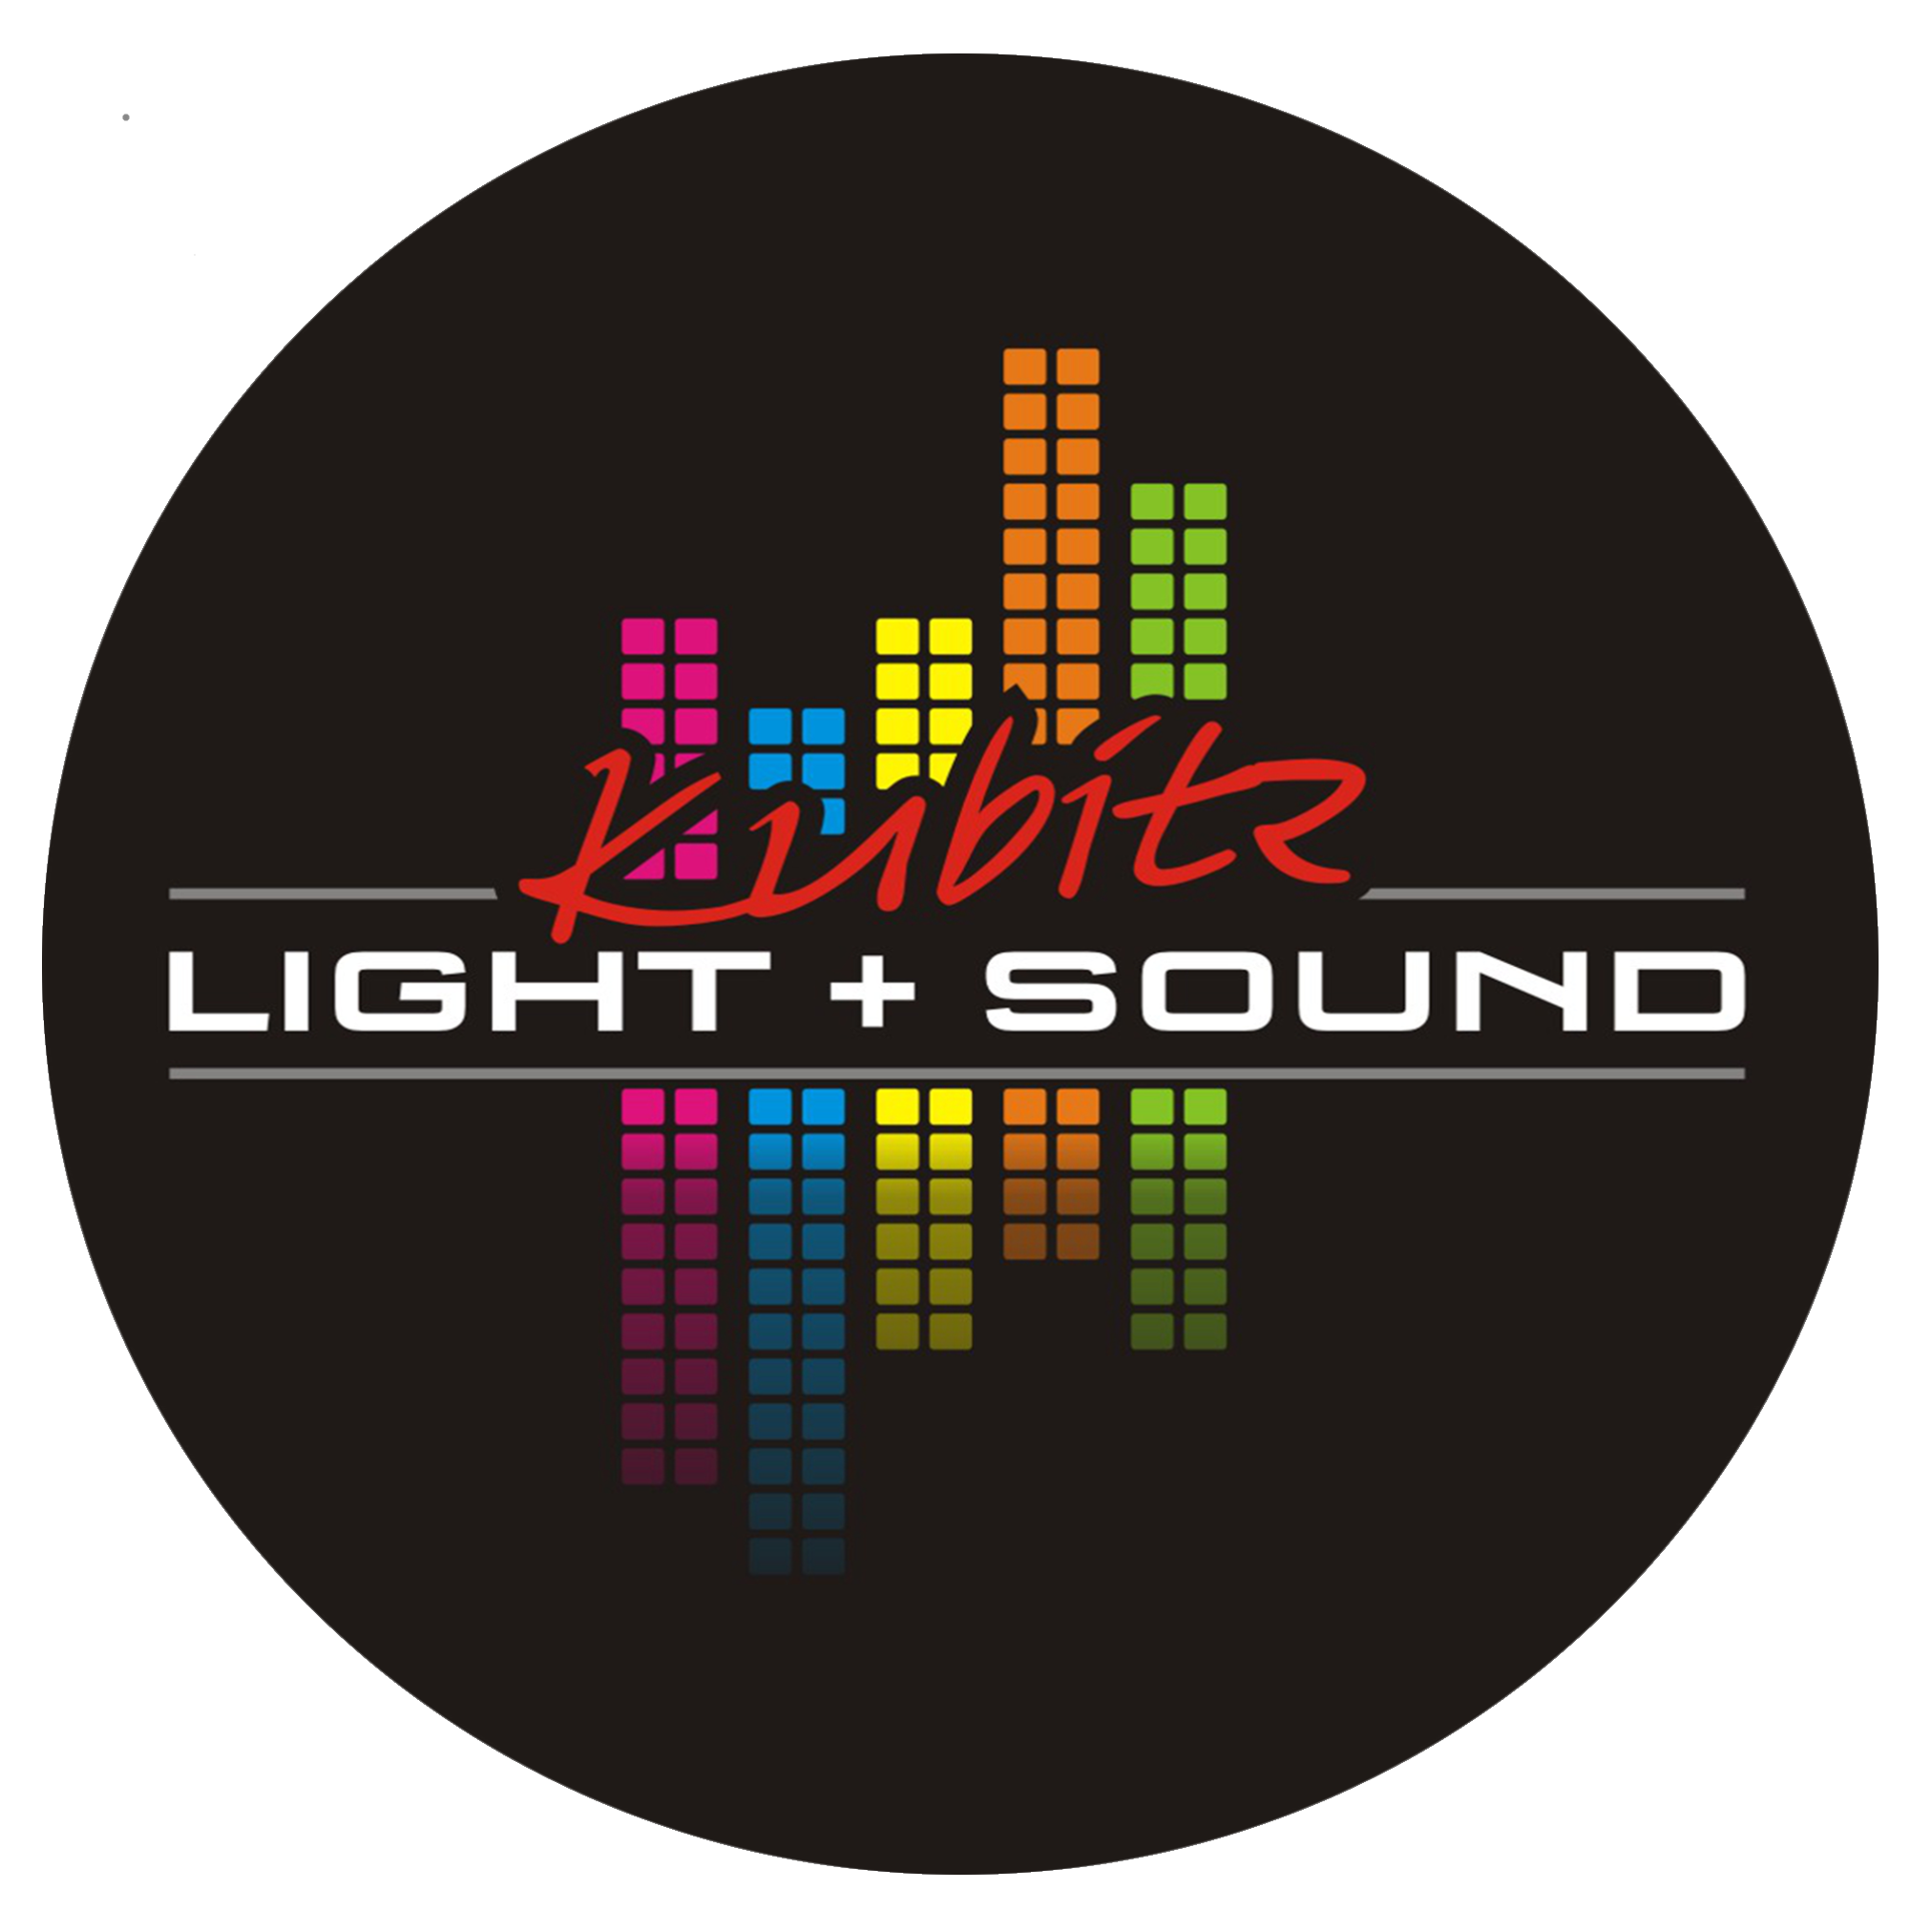 Kubitz Light + Sound